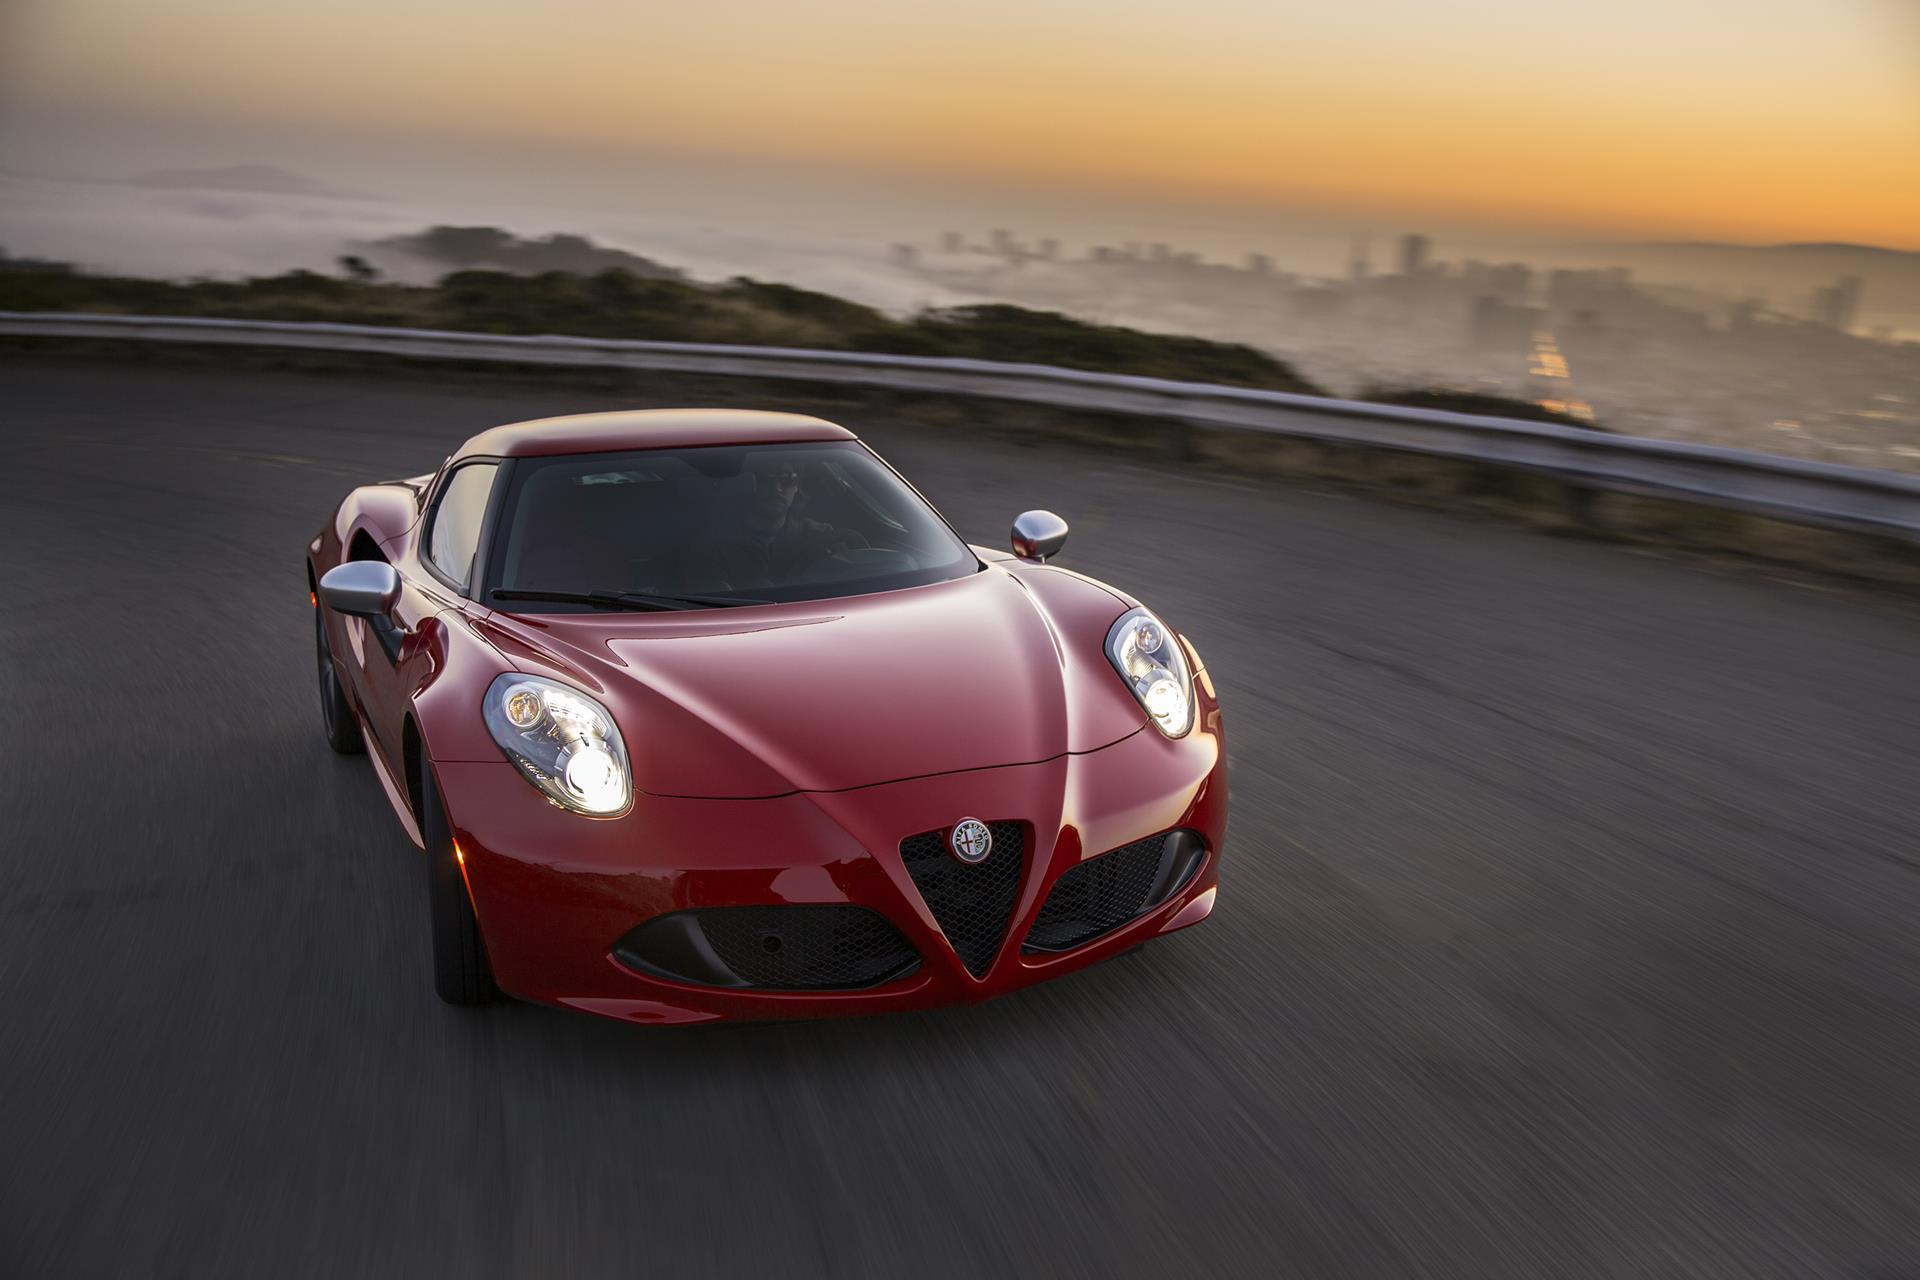 2017 alfa romeo 4c technical specifications and data engine dimensions and mechanical details. Black Bedroom Furniture Sets. Home Design Ideas